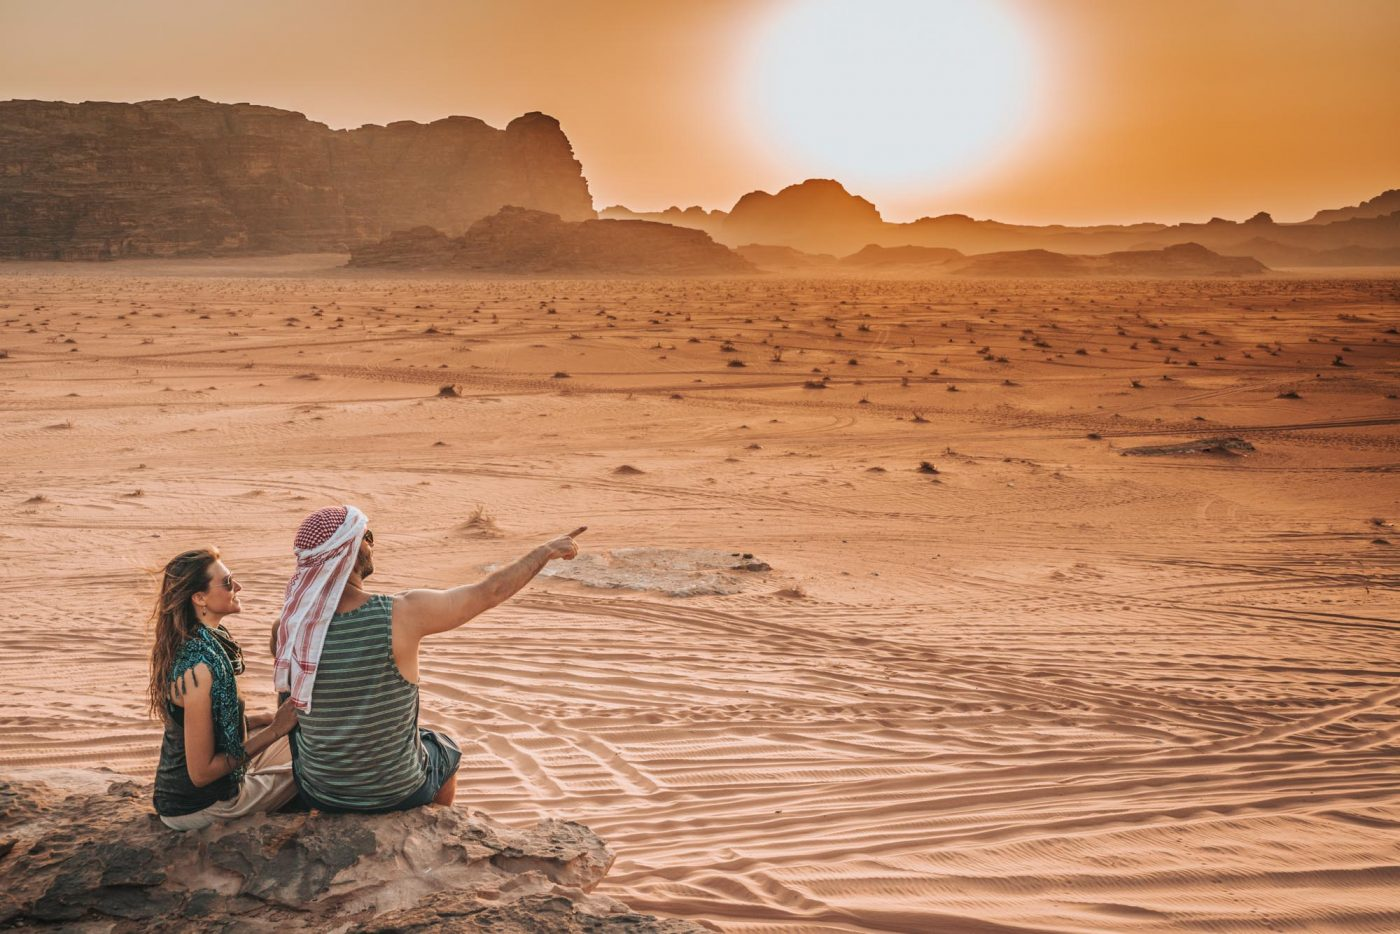 Places to visit in Jordan: Wadi Rum